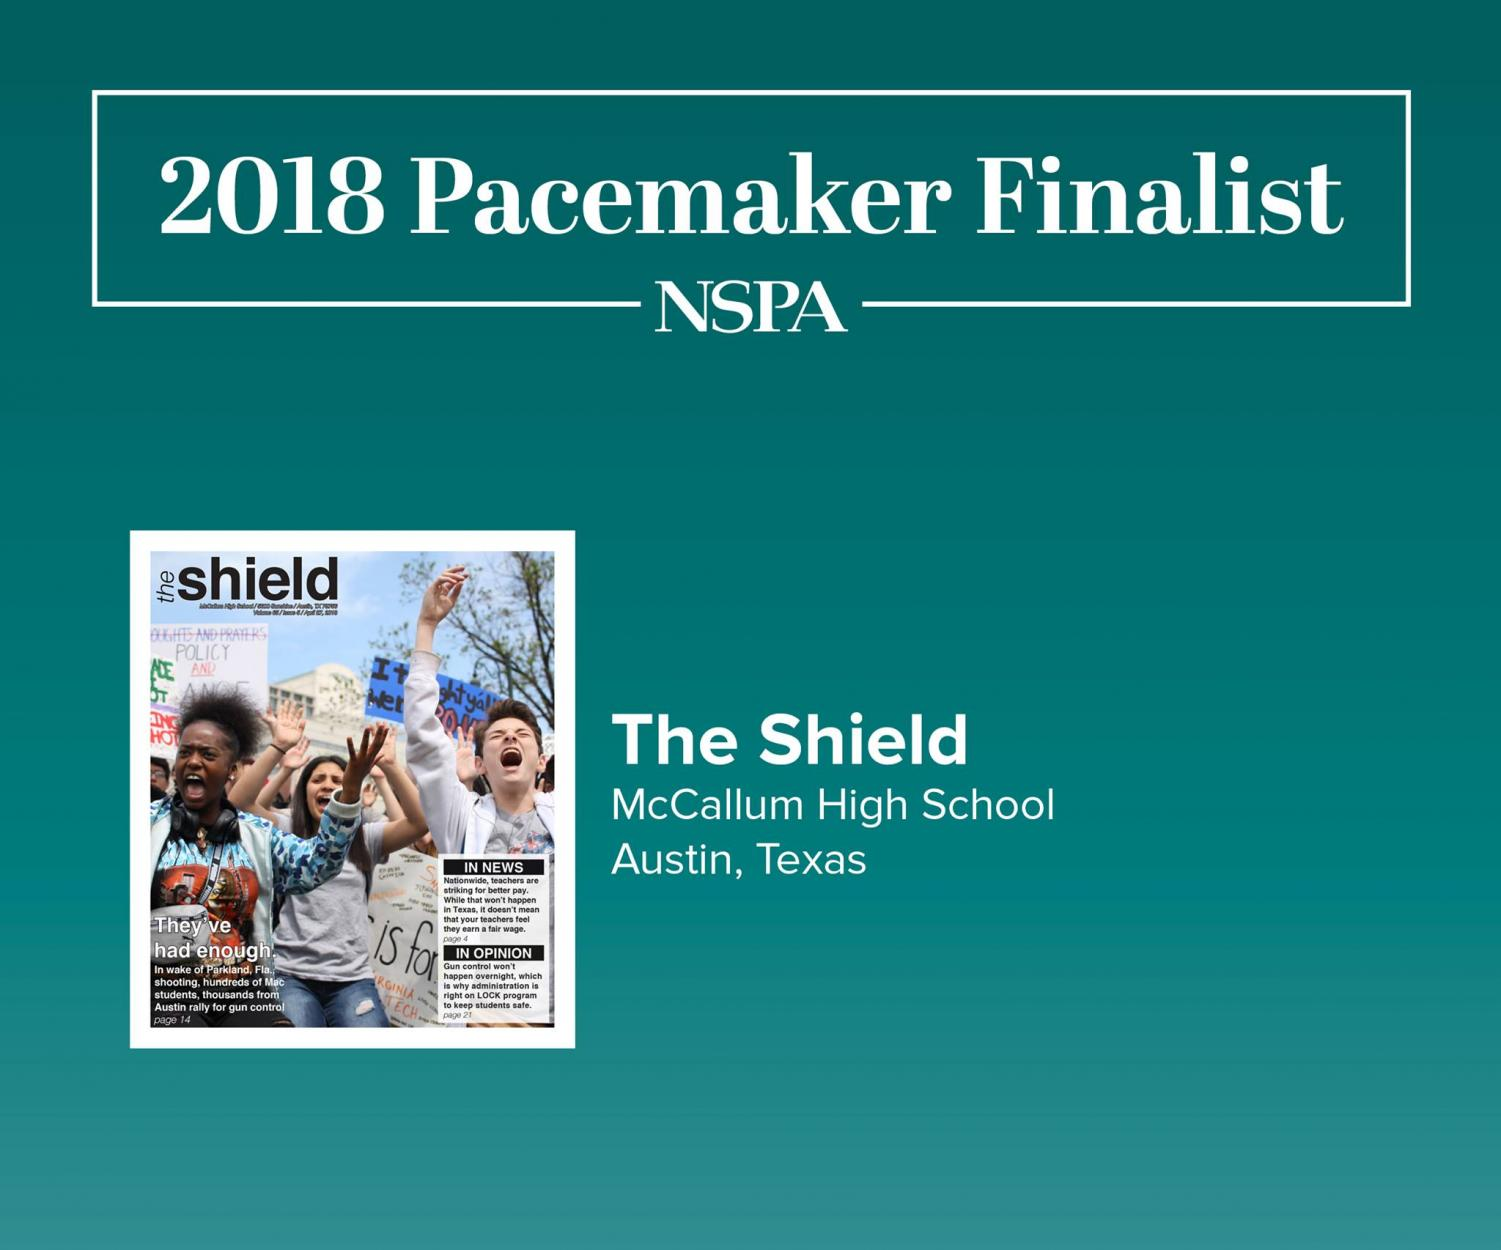 The Shield has been named one of 67 NSPA Newspaper Pacemaker Award finalists.